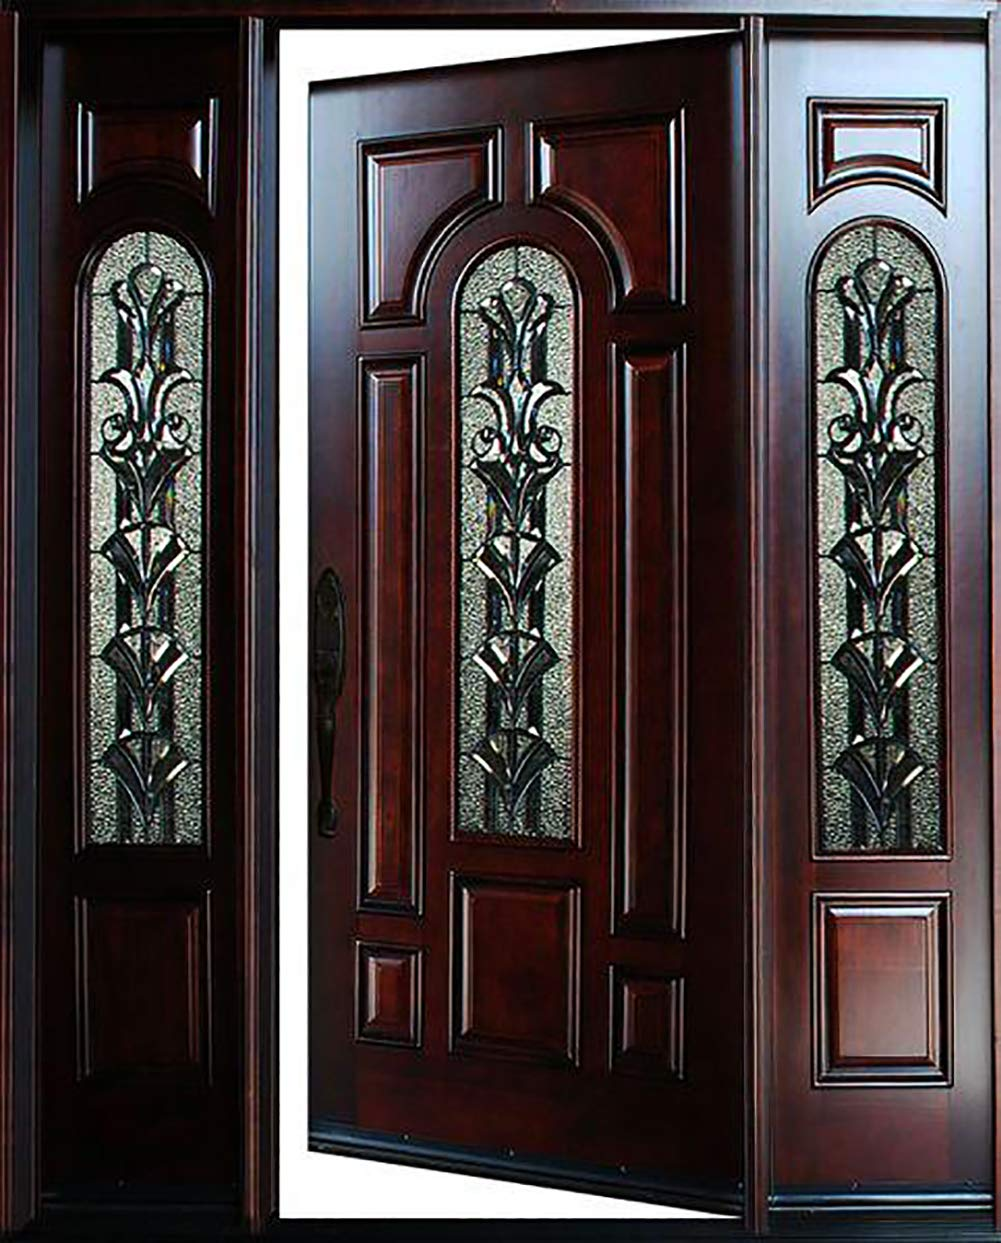 18X36X80 Solid Wood Exterior Front Entry Door Finished with Sidelights Right Hand in-Swing Prehung Door with Glass Decoration